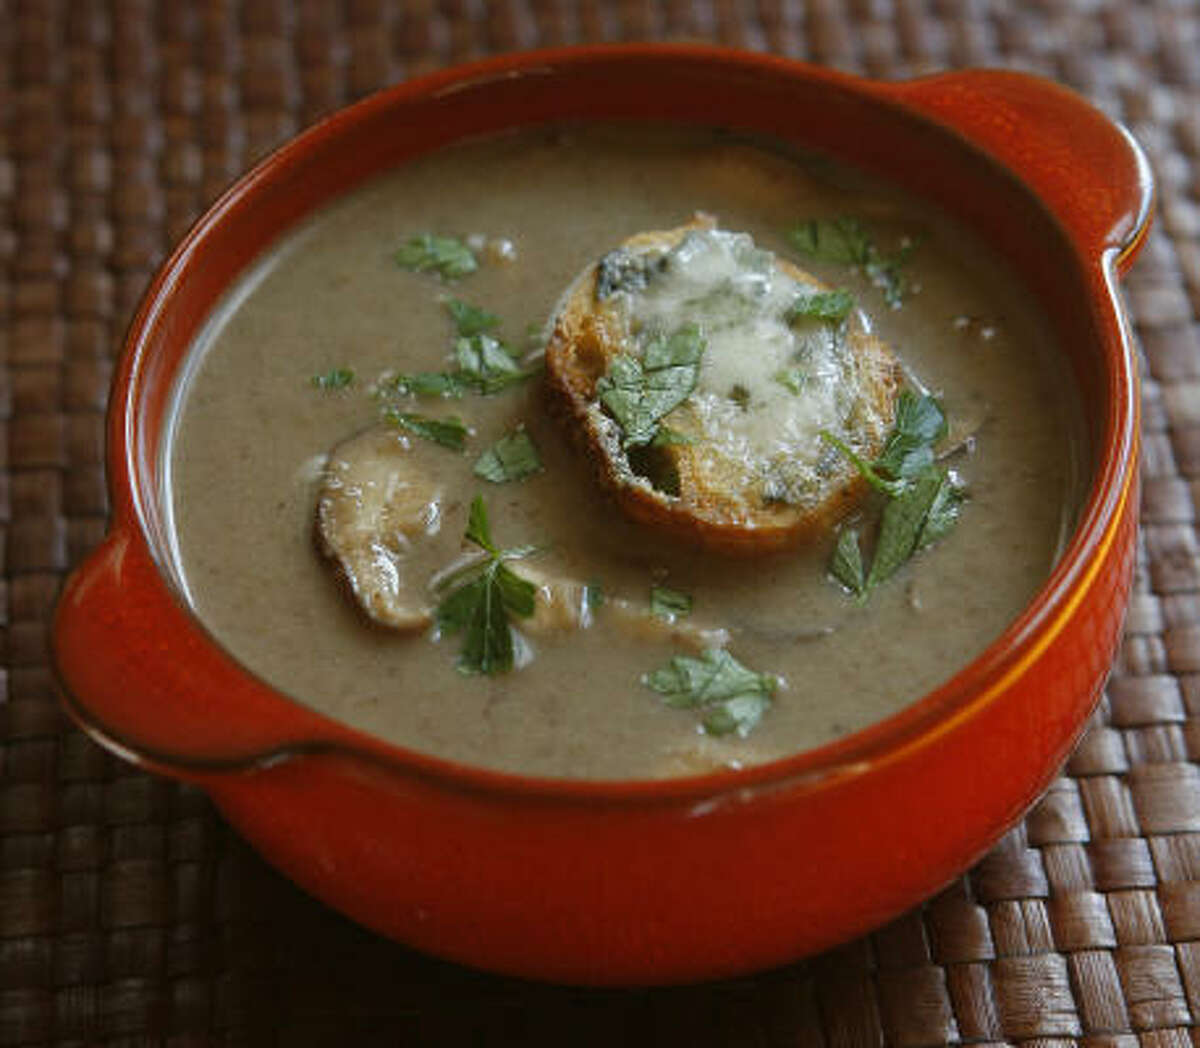 Wild mushroom soup You can use one or several kinds of wild mushrooms for this easy soup from Denis Soriano of Grand Cafe. [recipe]